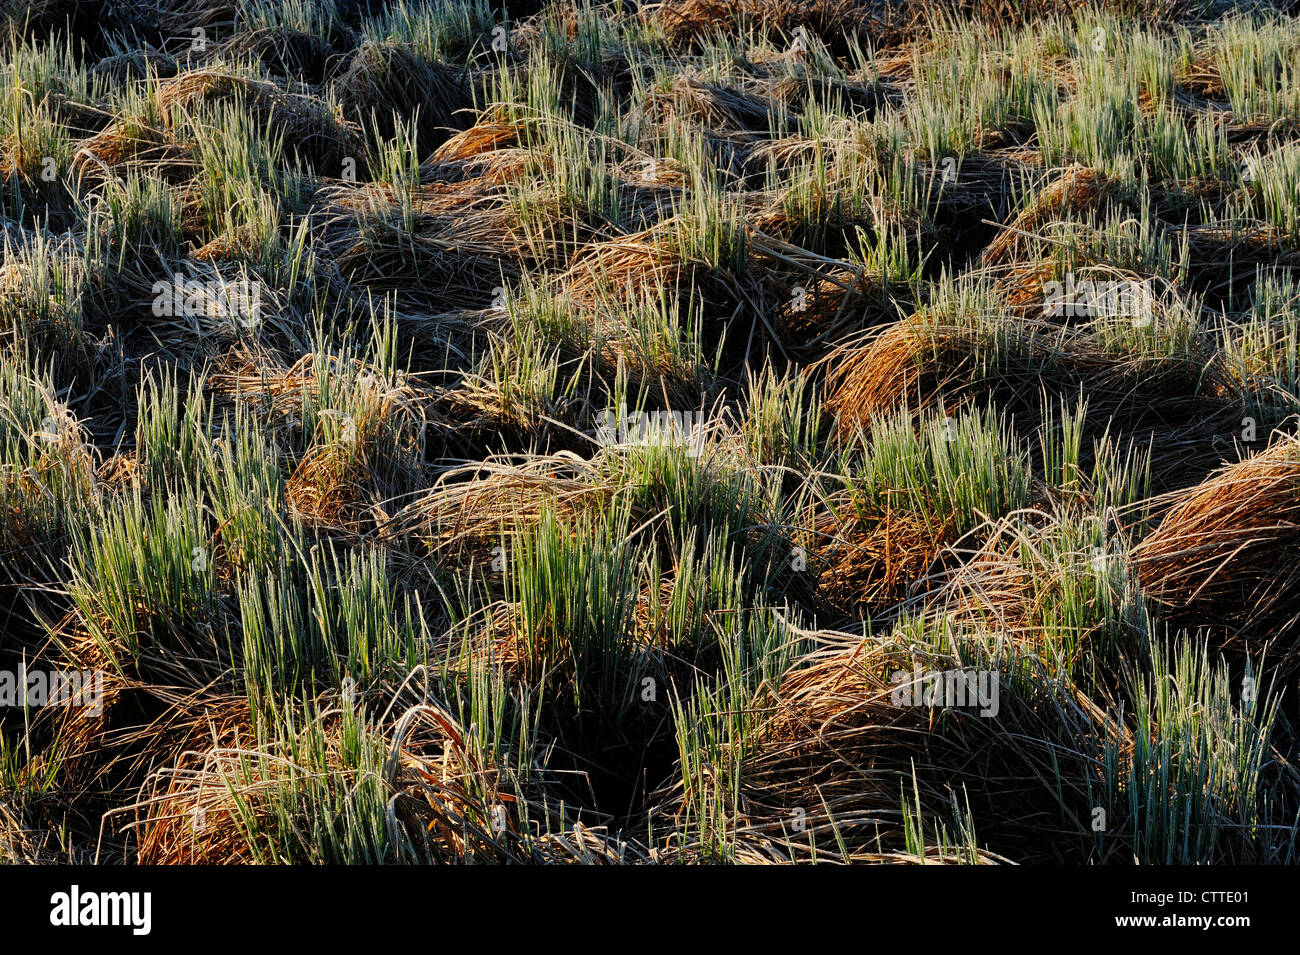 Frosted marsh grasses in early spring, Greater Sudbury, Ontario, Canada - Stock Image